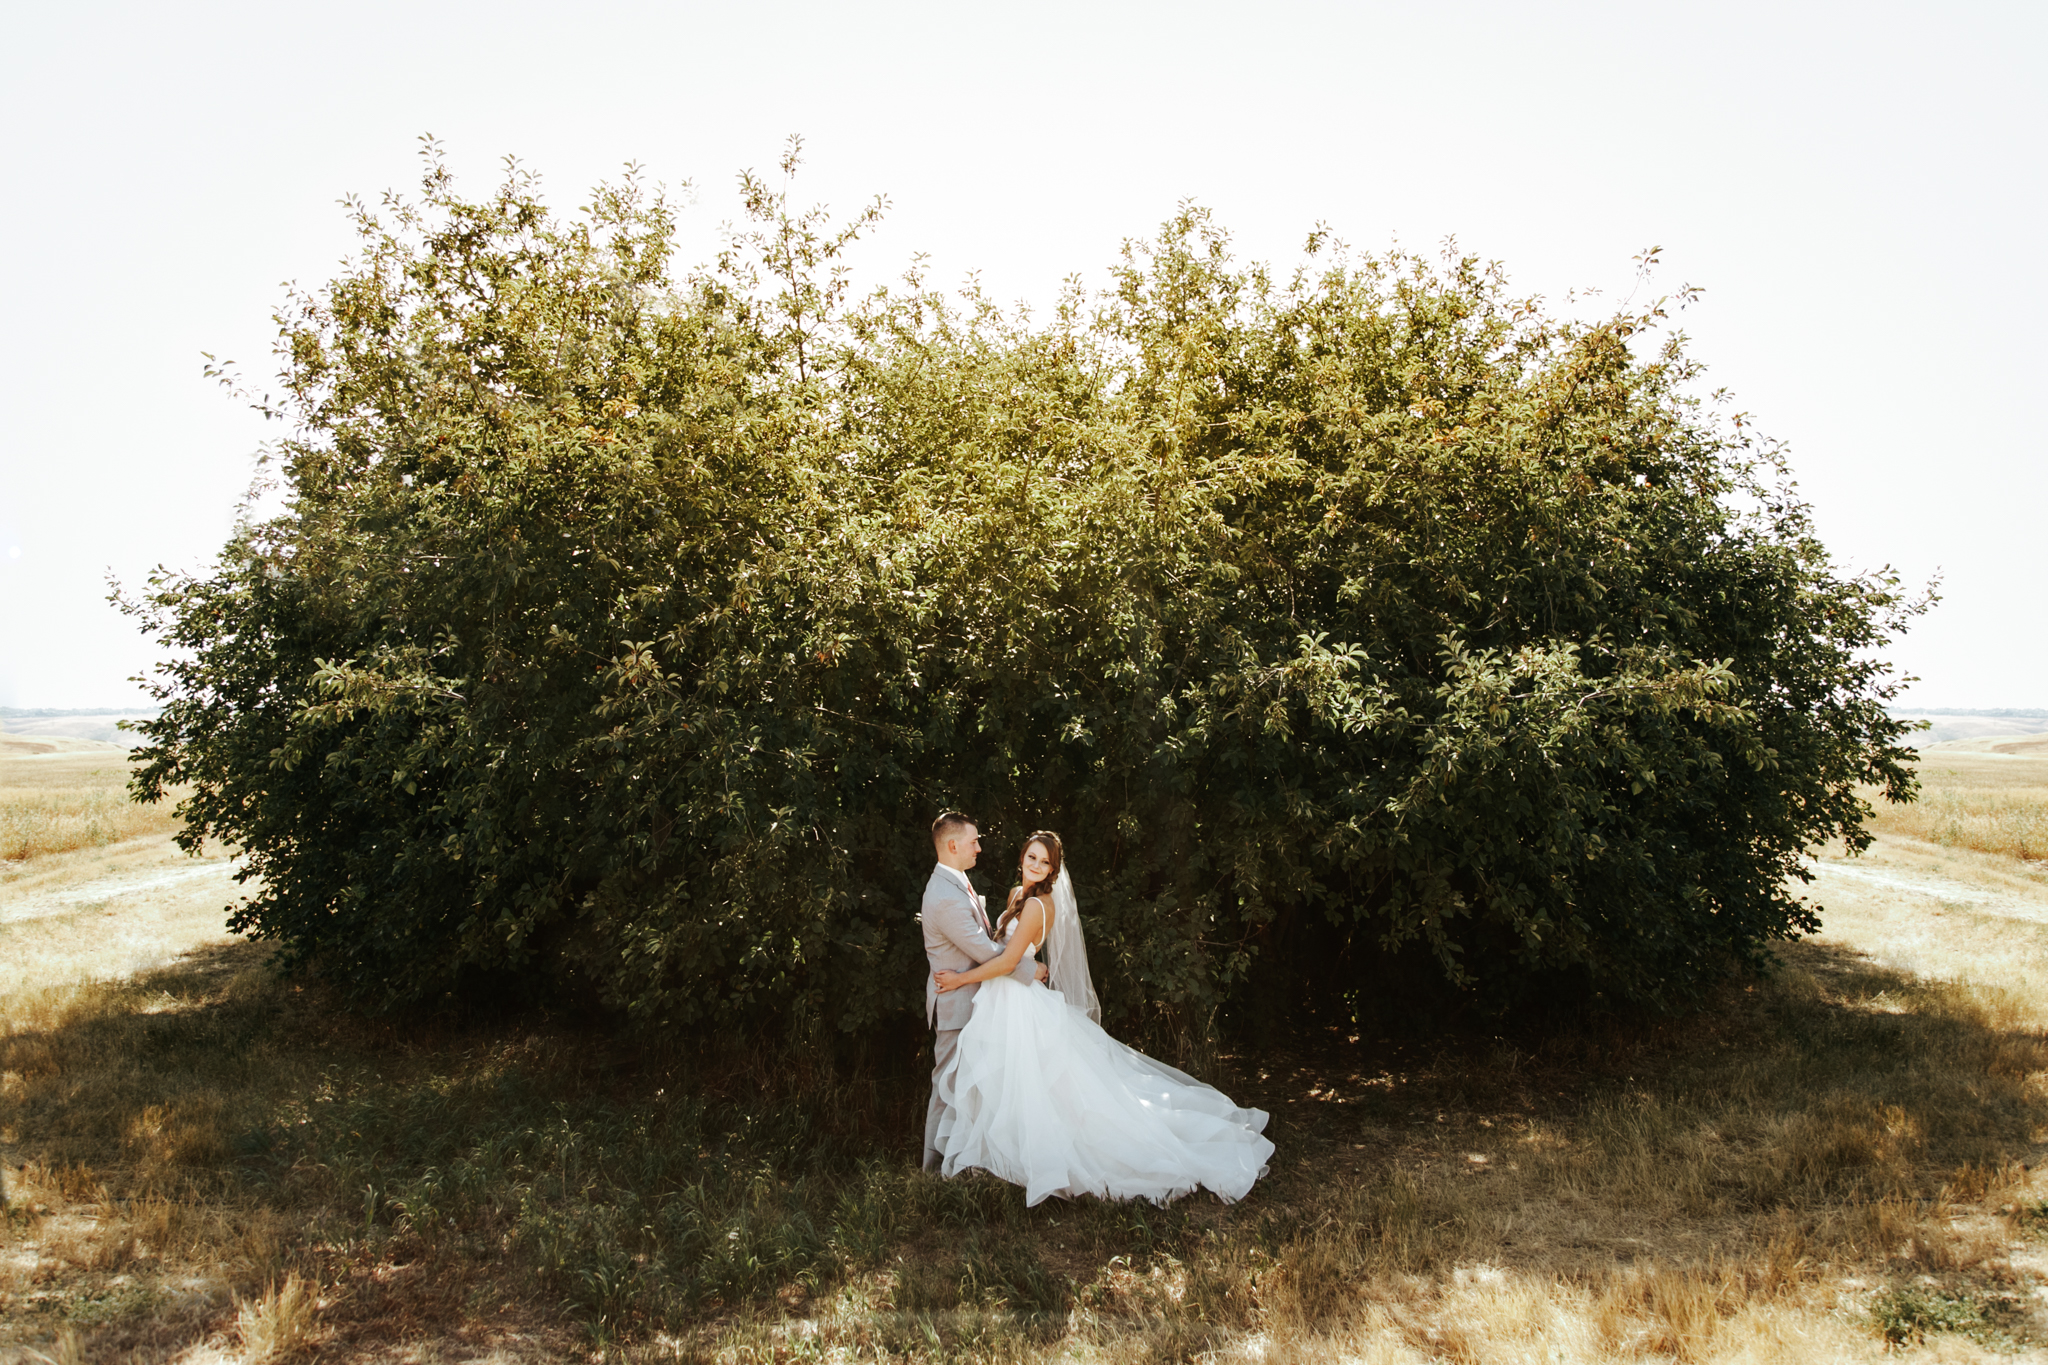 lethbridge-wedding-photography-love-and-be-loved-photographer-sean-sharla-henderson-lake-wedding-image-picture-photo-70.jpg